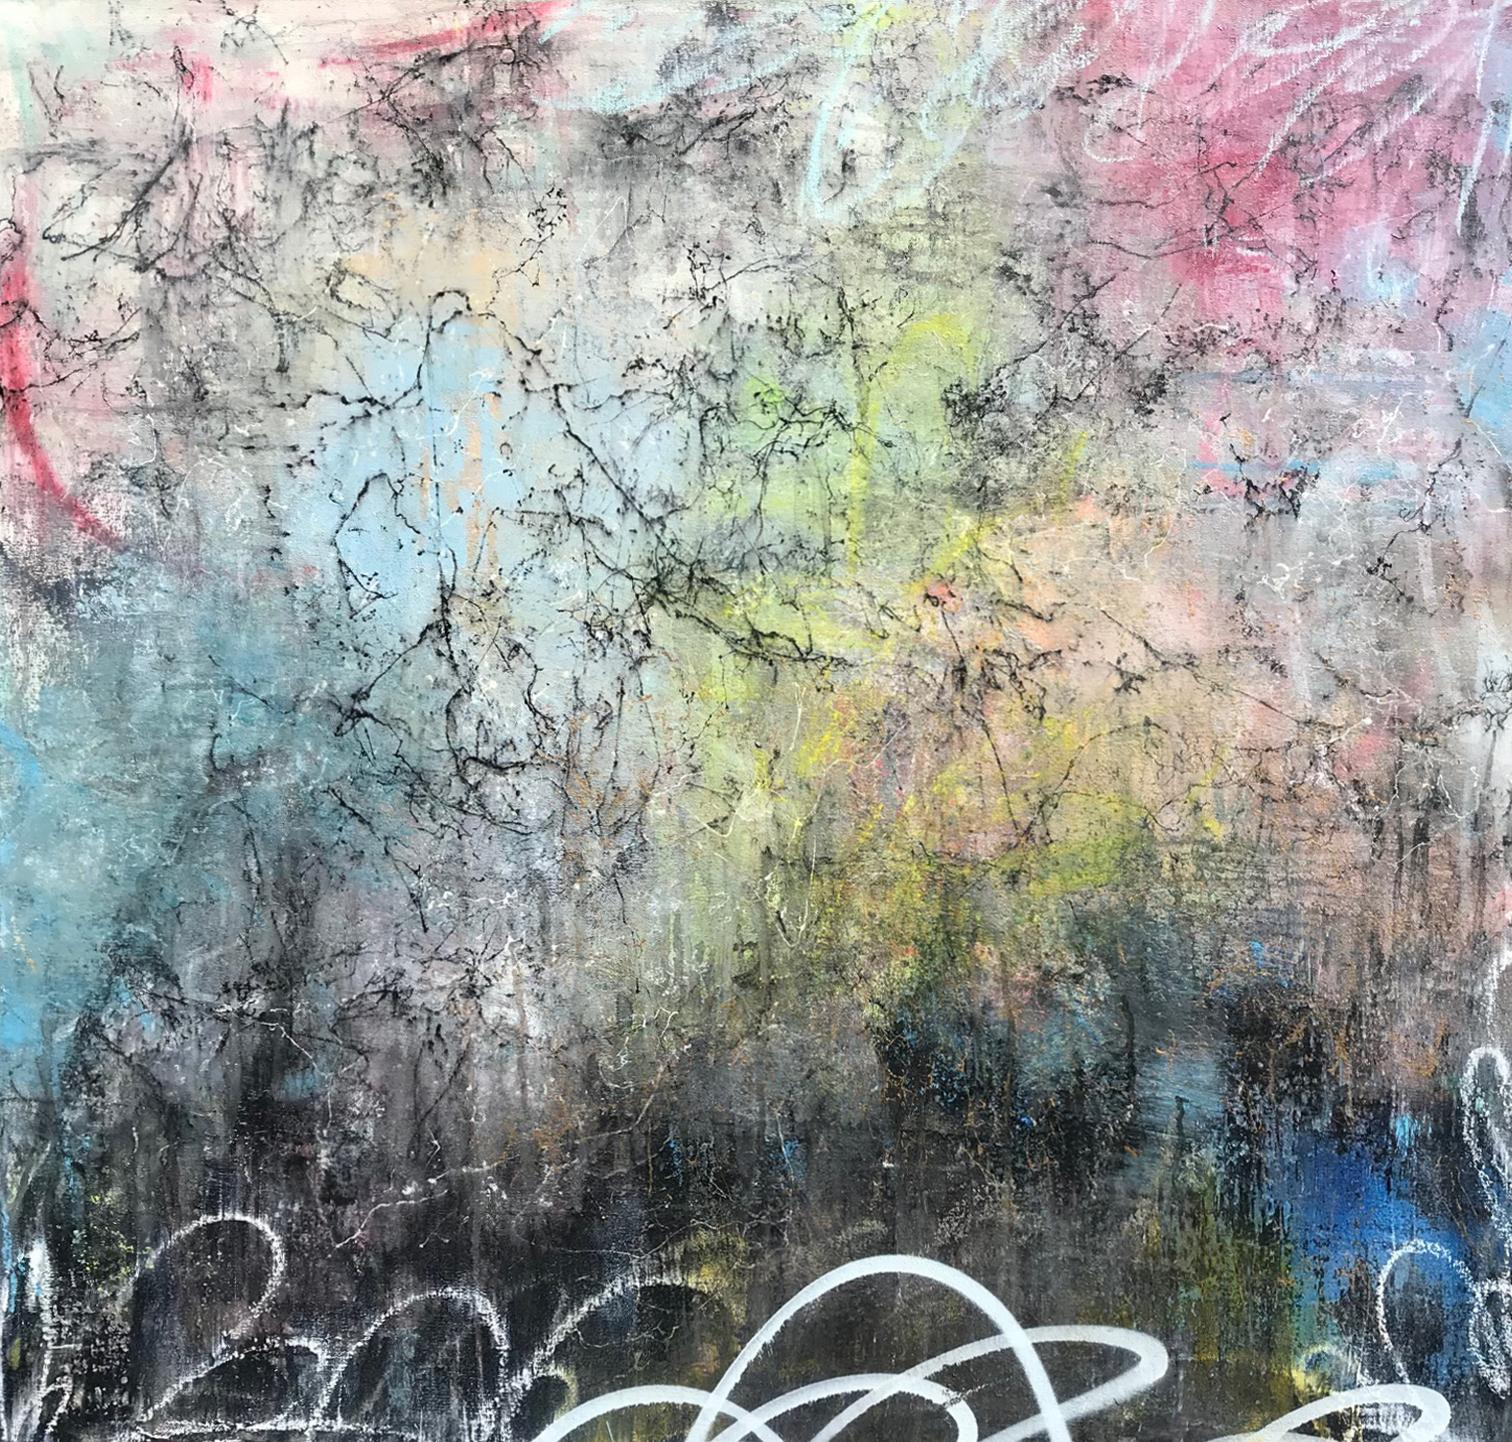 Unruly, 2018, Acrylic, Oil, Spray Paint on Canvas, Signed on Verso